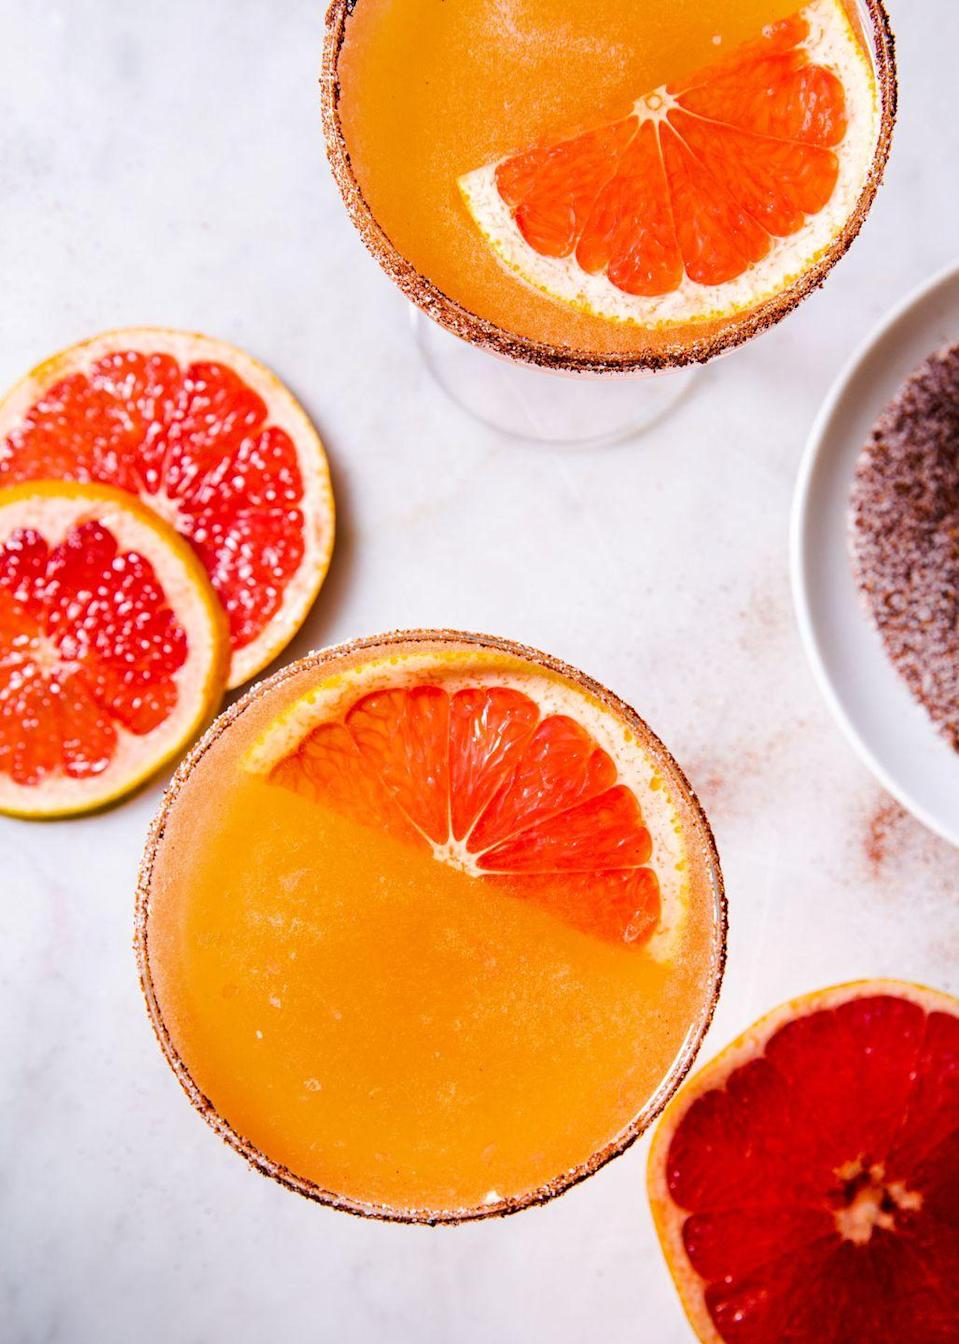 """<p>This unique cocktail might become your new go-to.</p><p>Get the recipe from <a href=""""https://www.delish.com/cooking/recipe-ideas/a30149814/grapefruit-sidecar-recipe/"""" rel=""""nofollow noopener"""" target=""""_blank"""" data-ylk=""""slk:Delish"""" class=""""link rapid-noclick-resp"""">Delish</a>.</p>"""